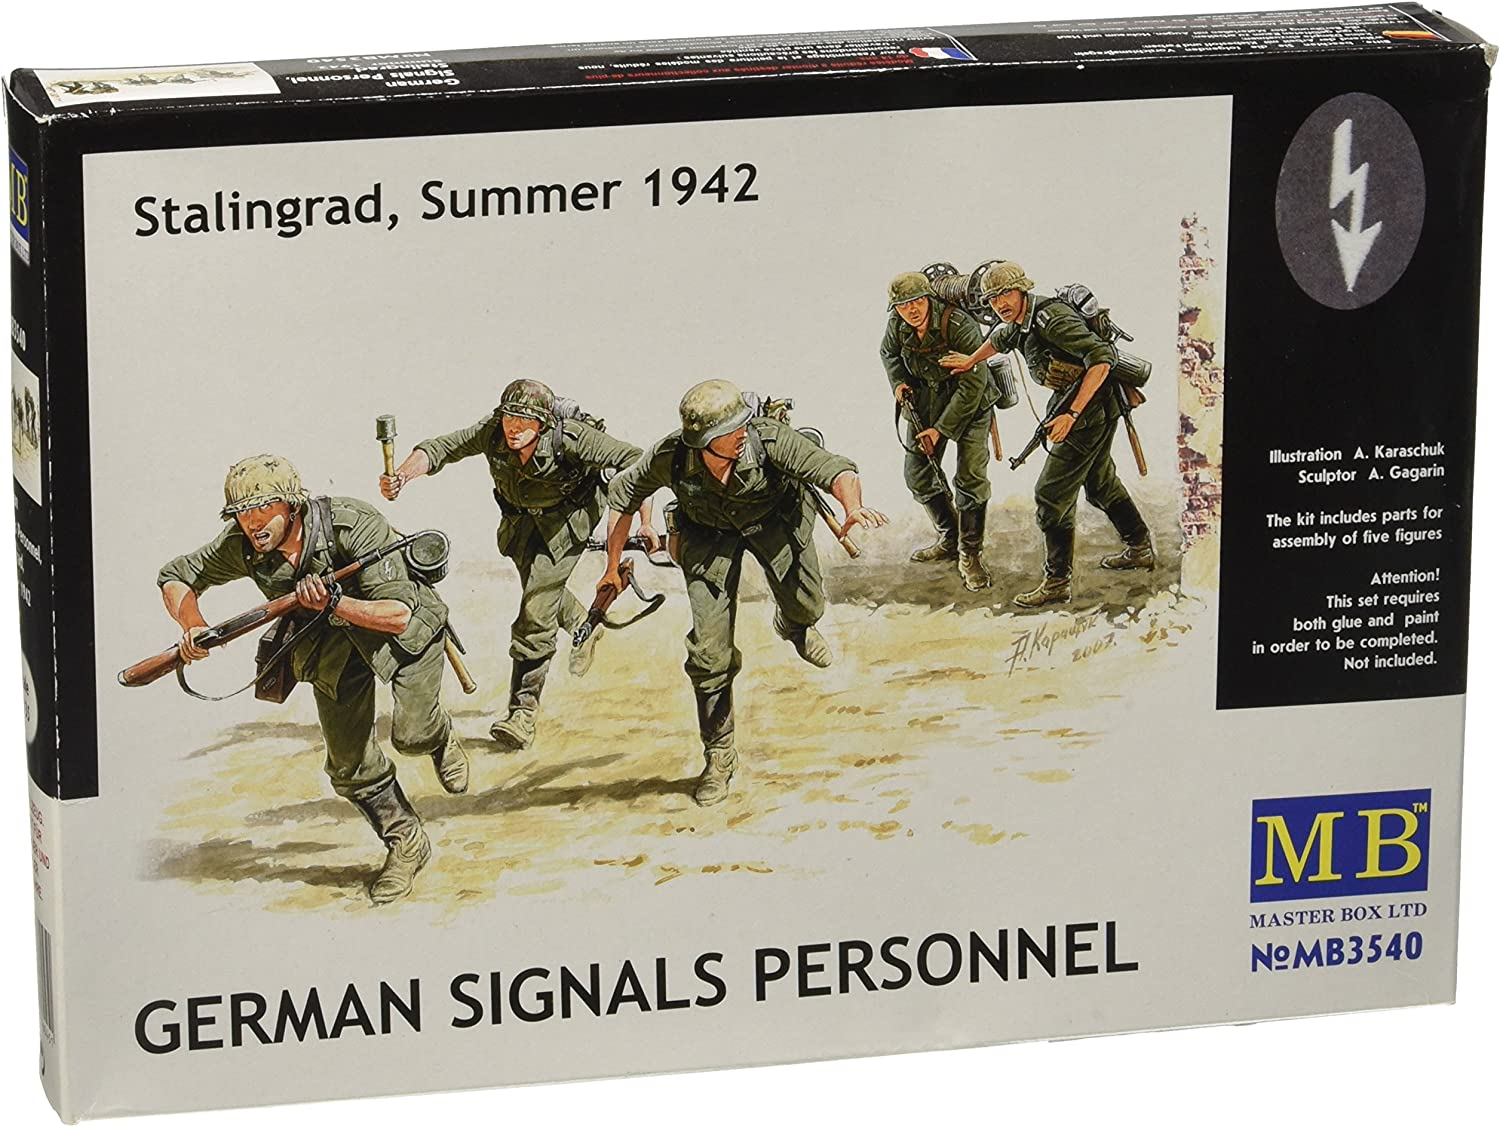 Master Box MB 1//35 3522 WWII German Infantry in Action Eastern Front Series 1